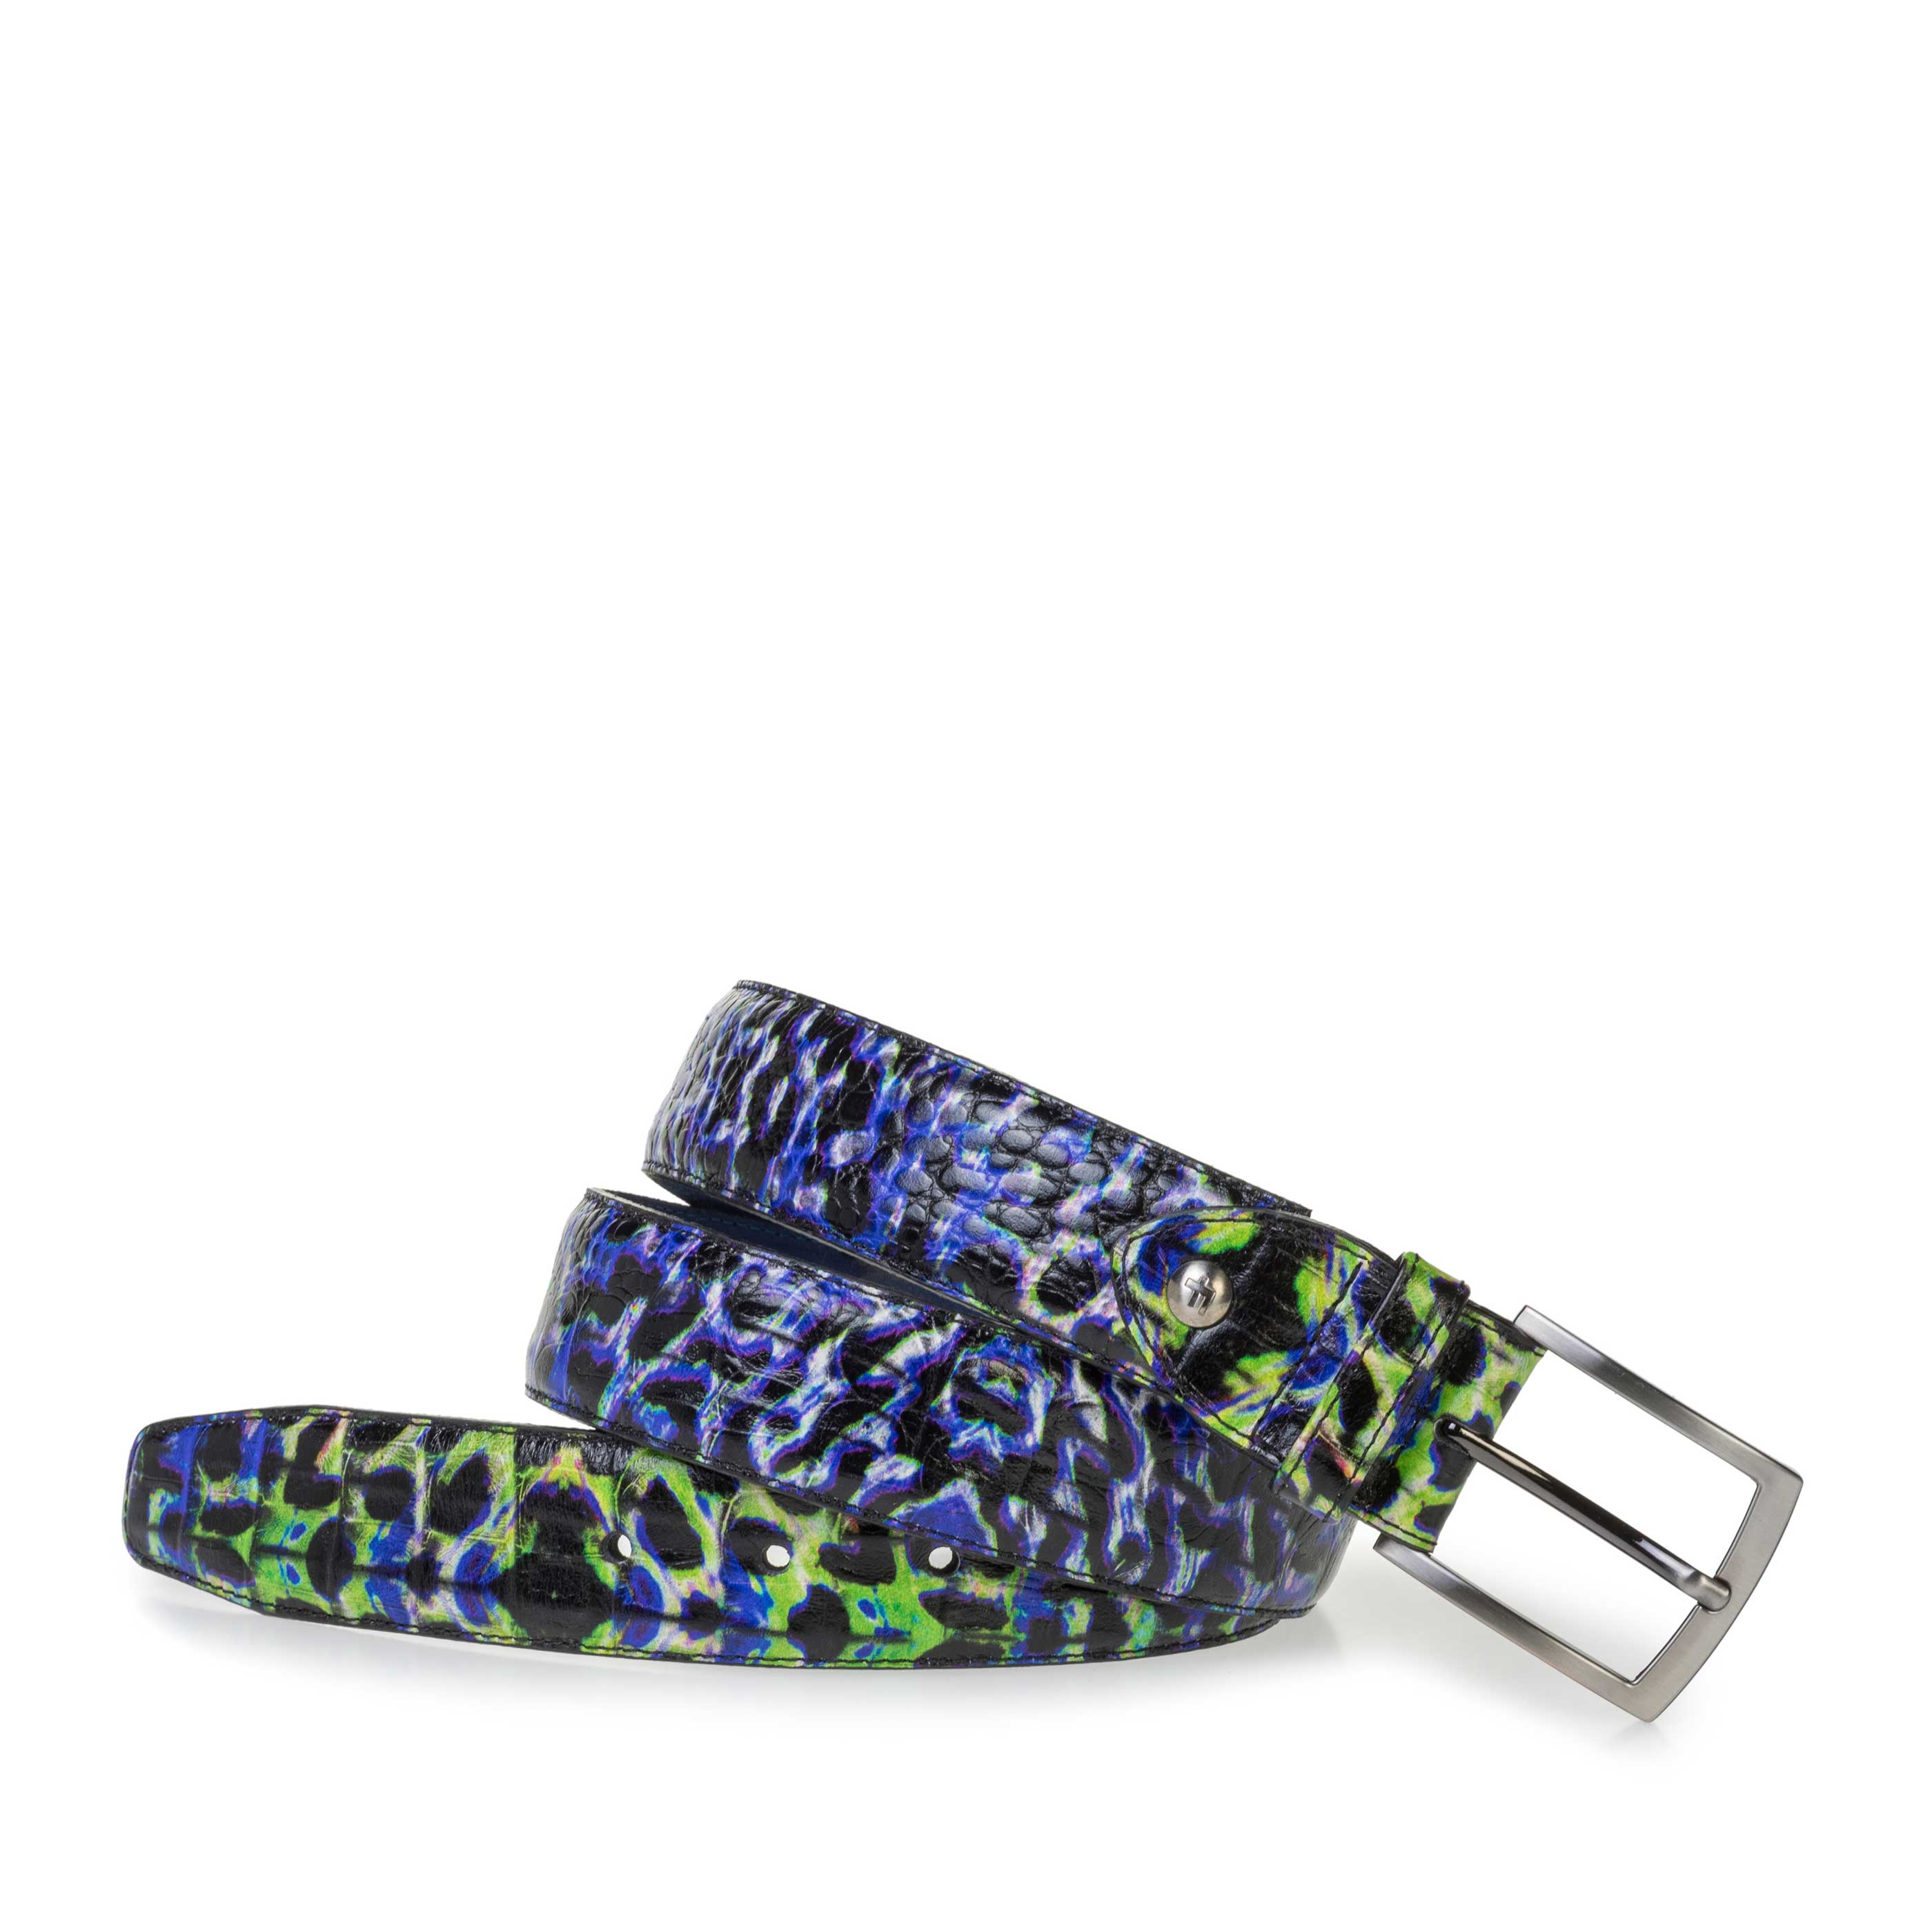 75200/98 - Premium blue belt with a croco print